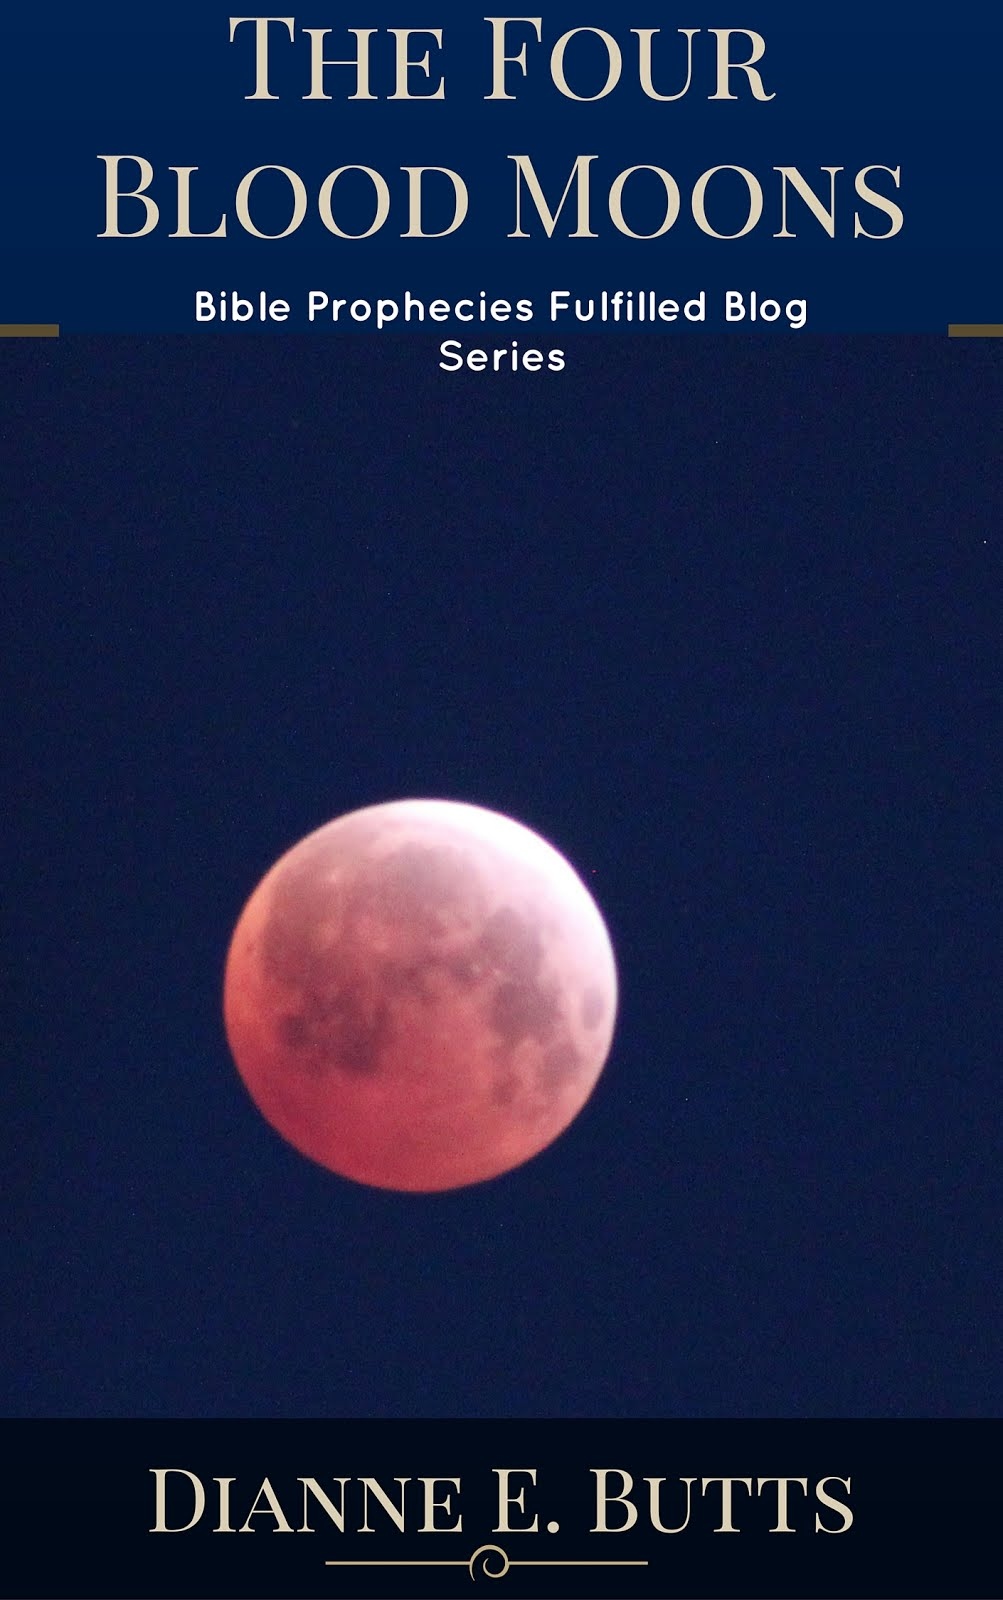 The Four Blood Moons